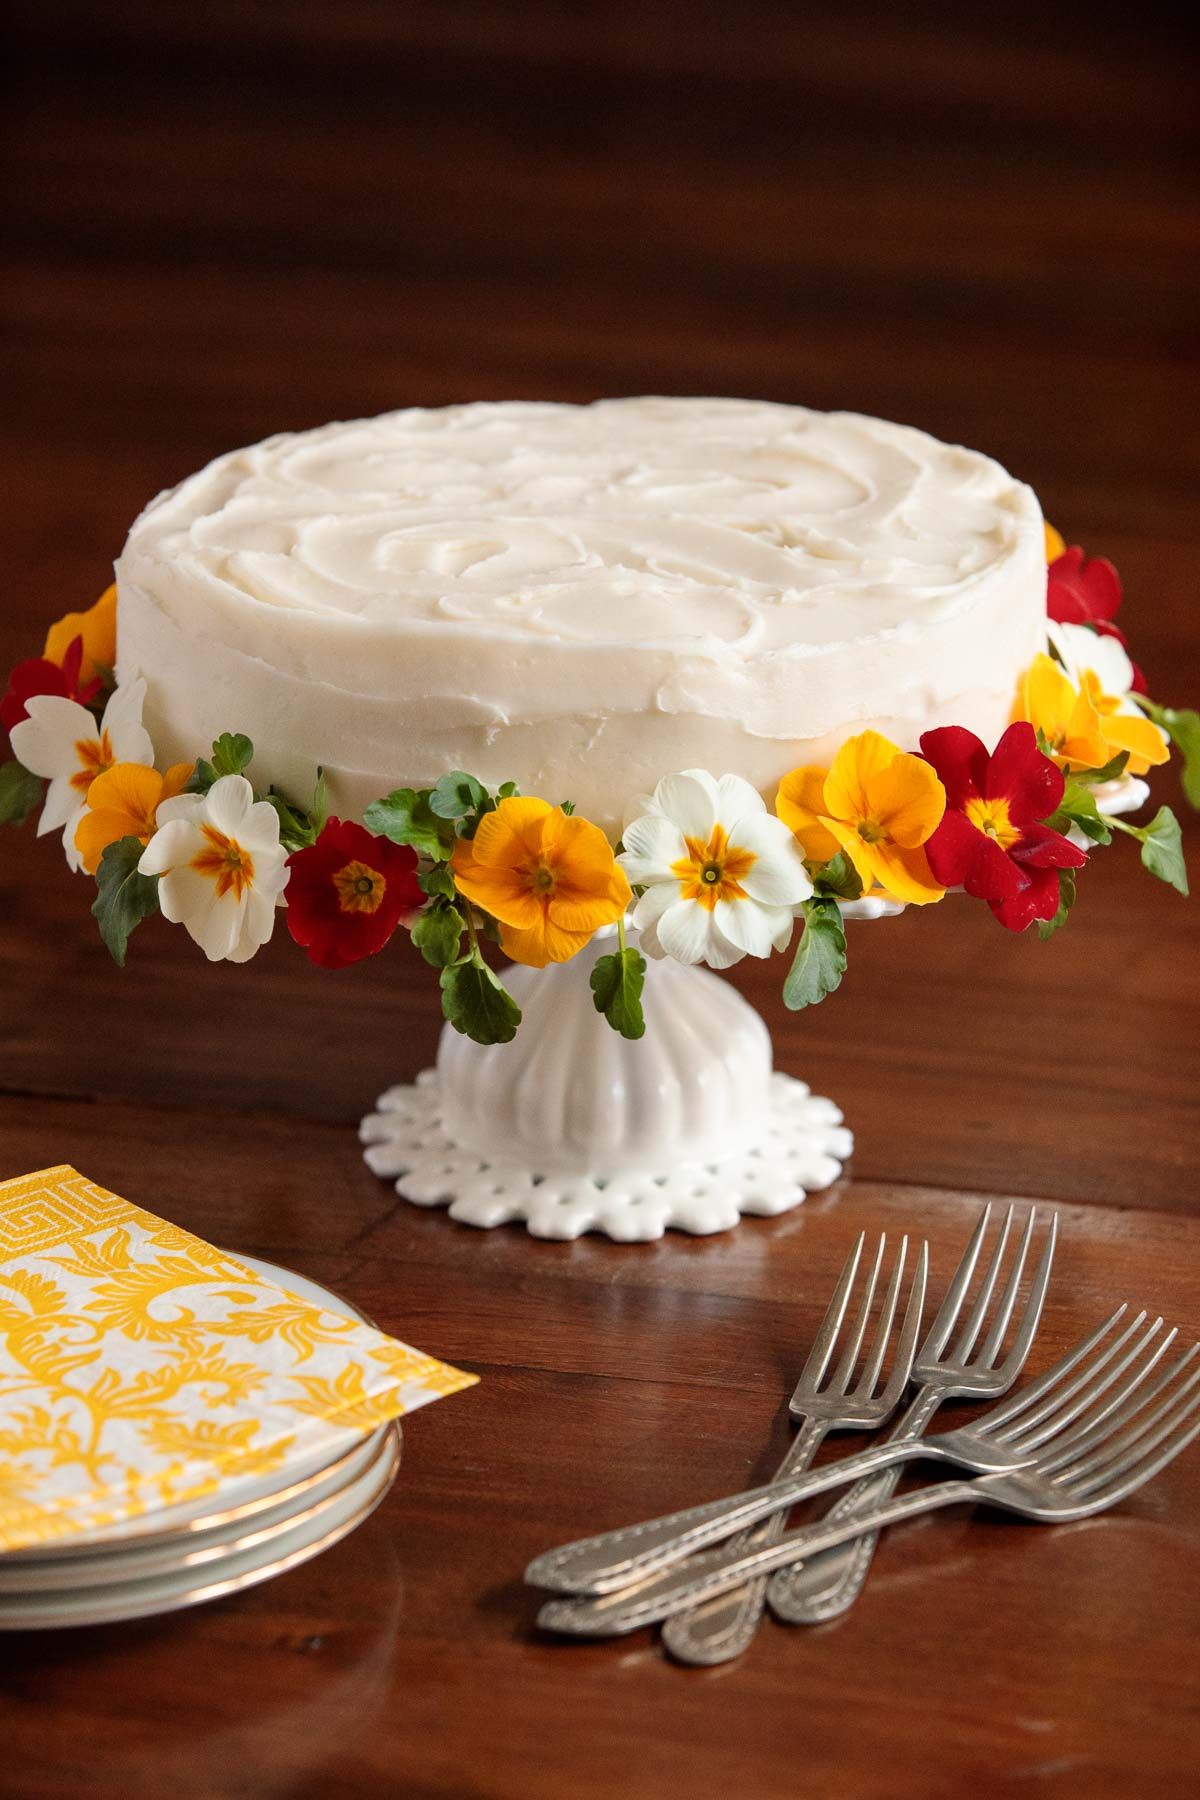 Vertical picture of Italian ricotta cake garnished with flowers on a white cake stand